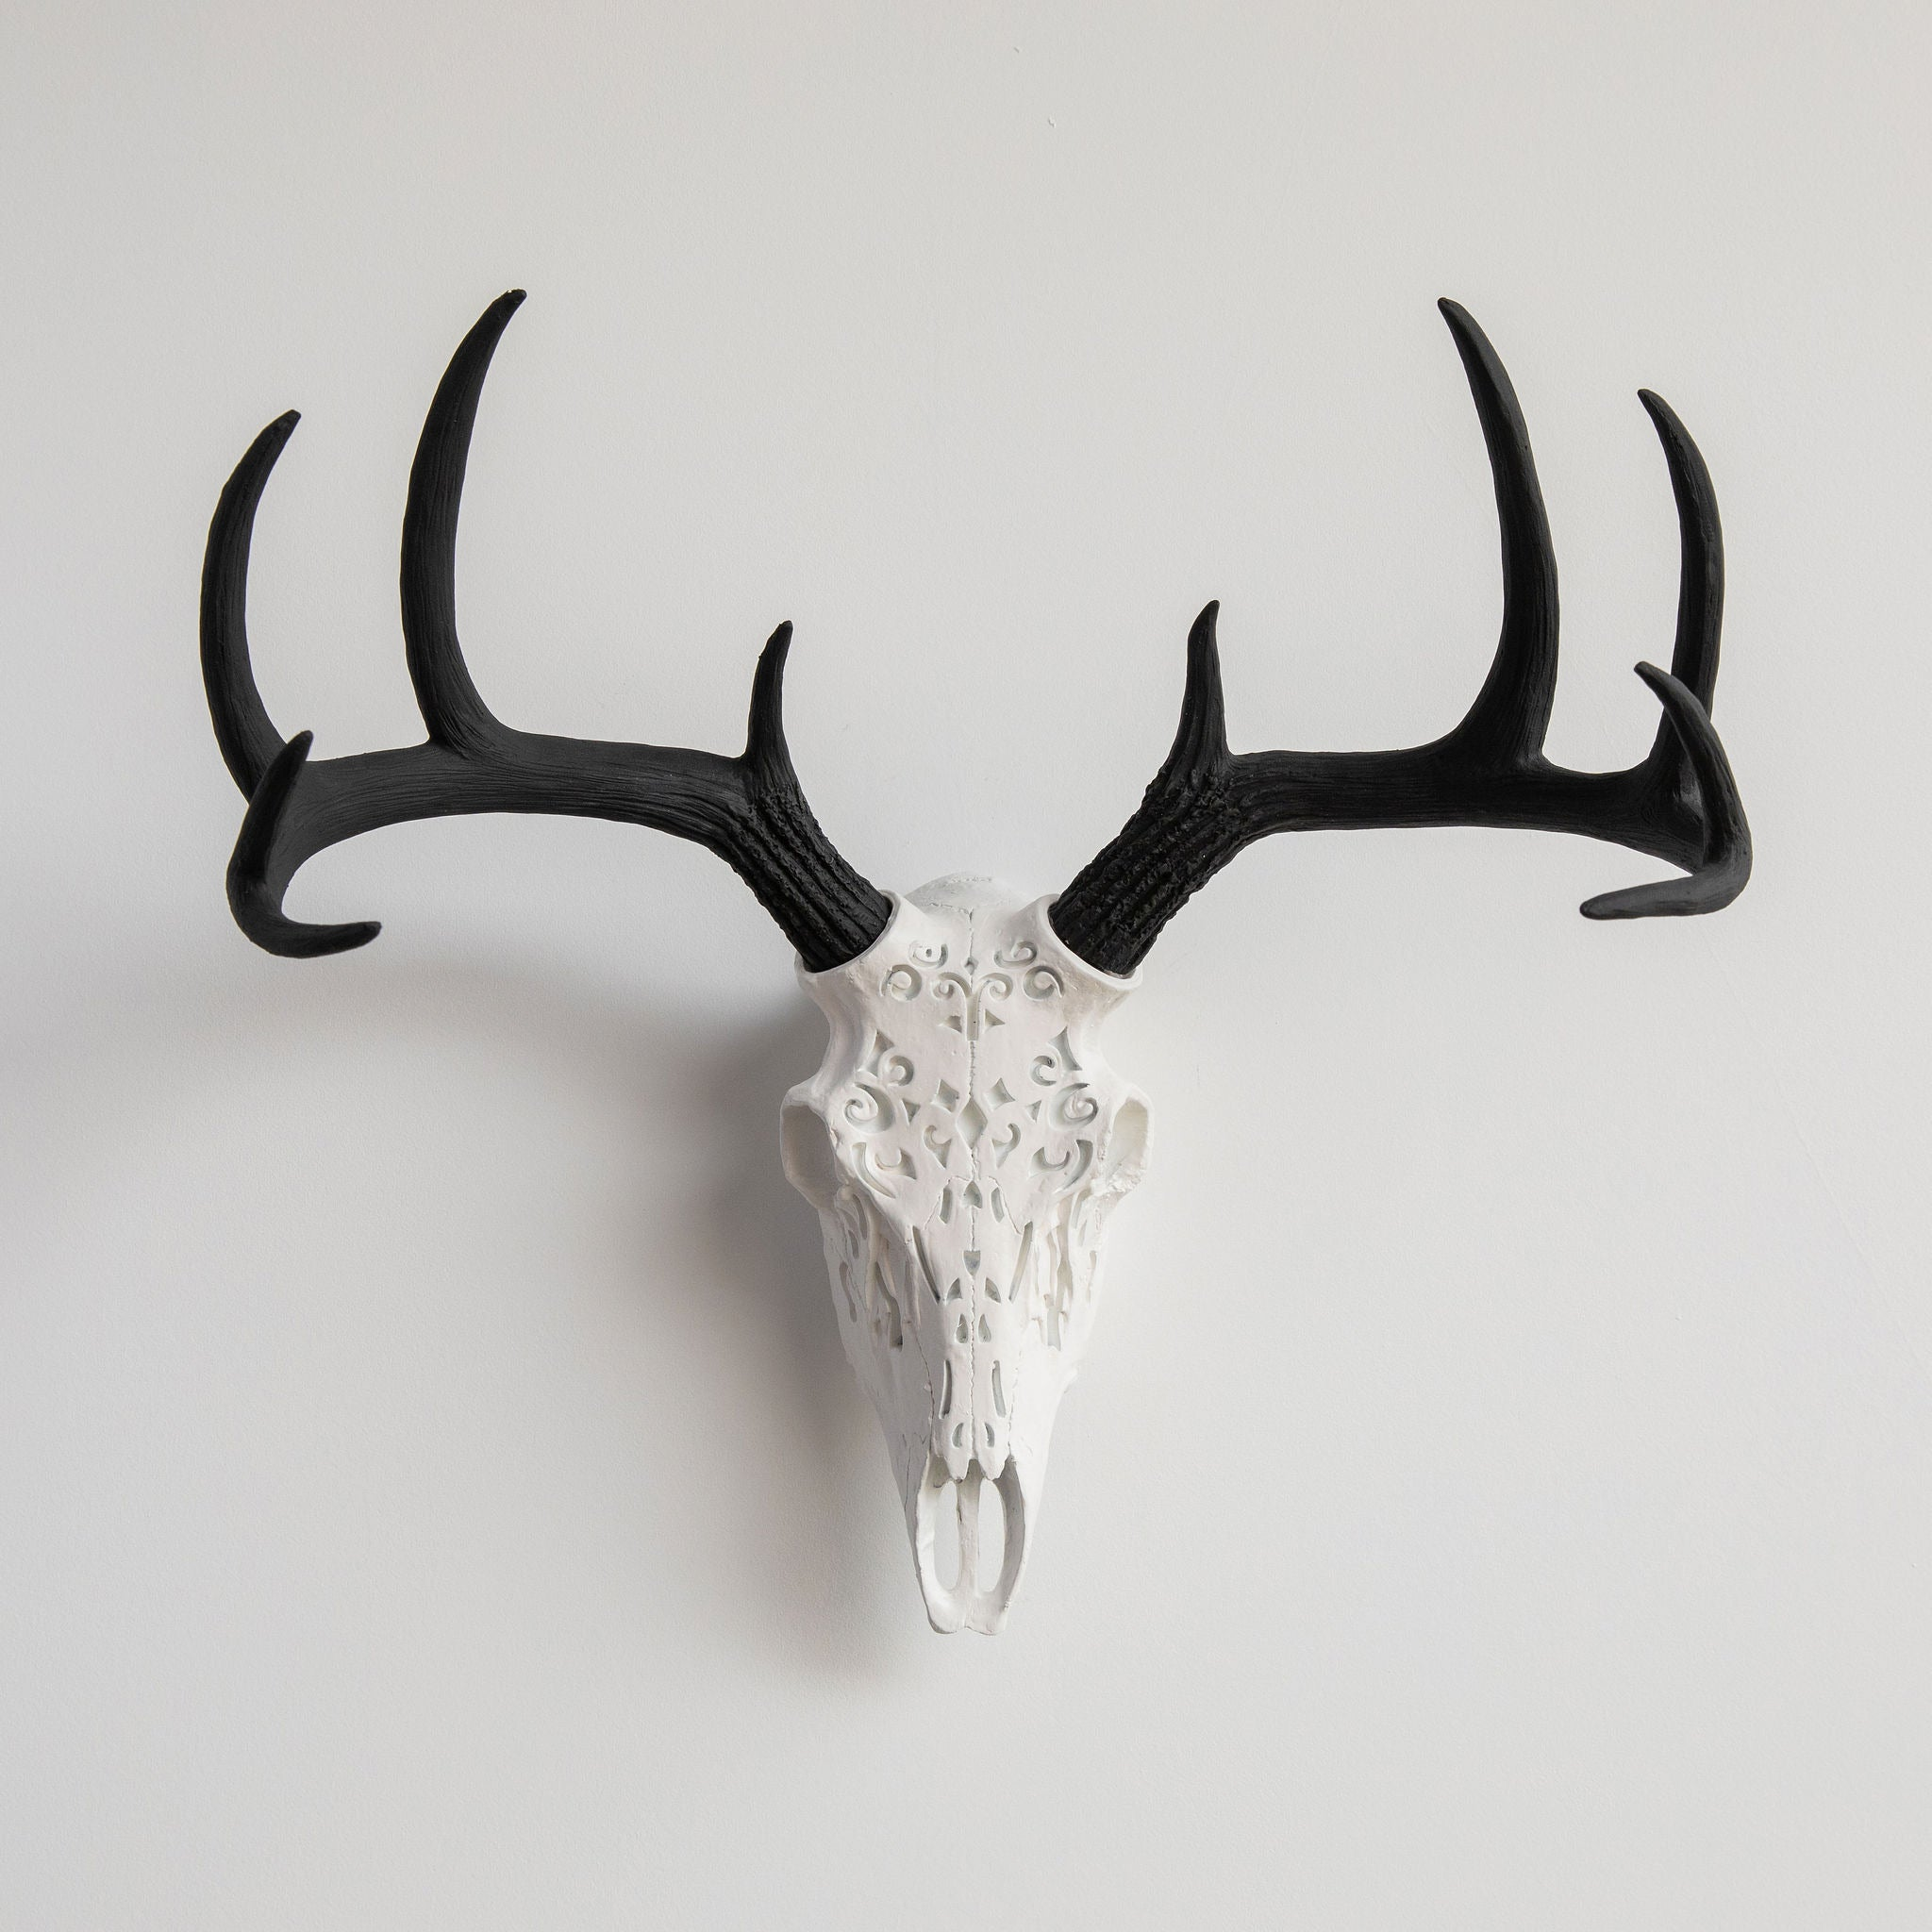 Decorative Faux Carved Deer Skull // White and Black